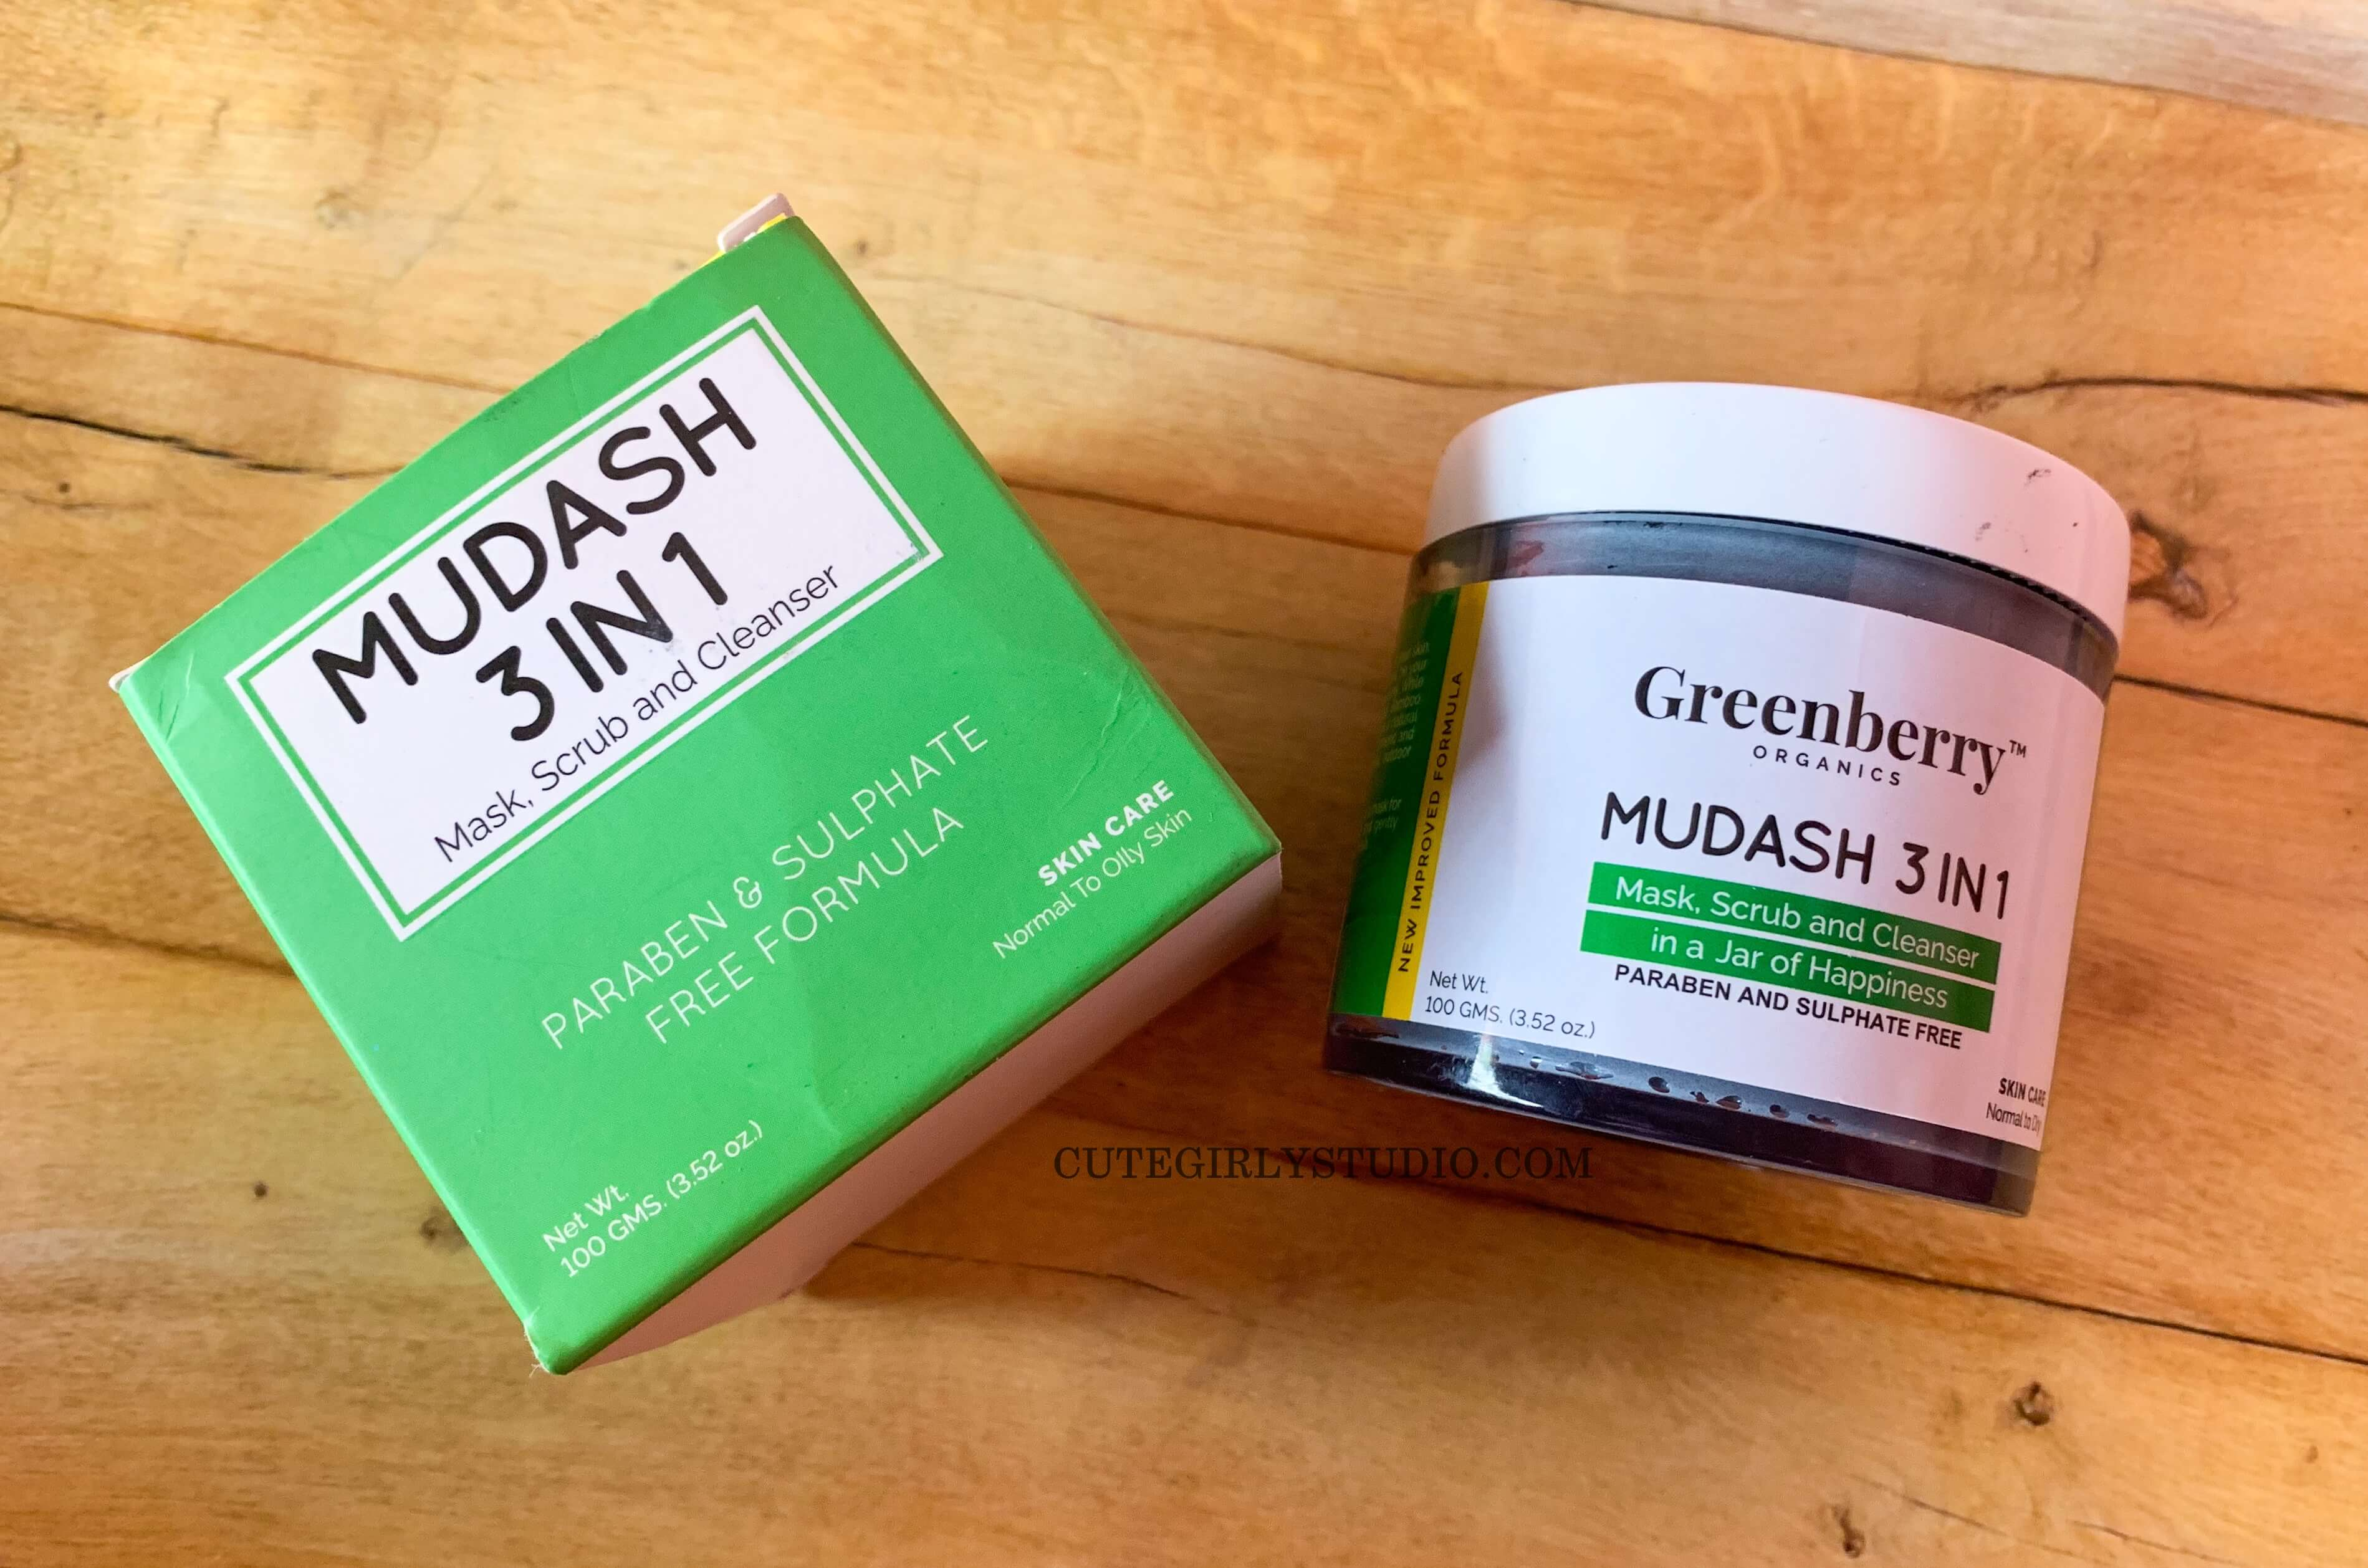 Greenberry organics mud ash 3 in 1 mask scrub and cleanser review